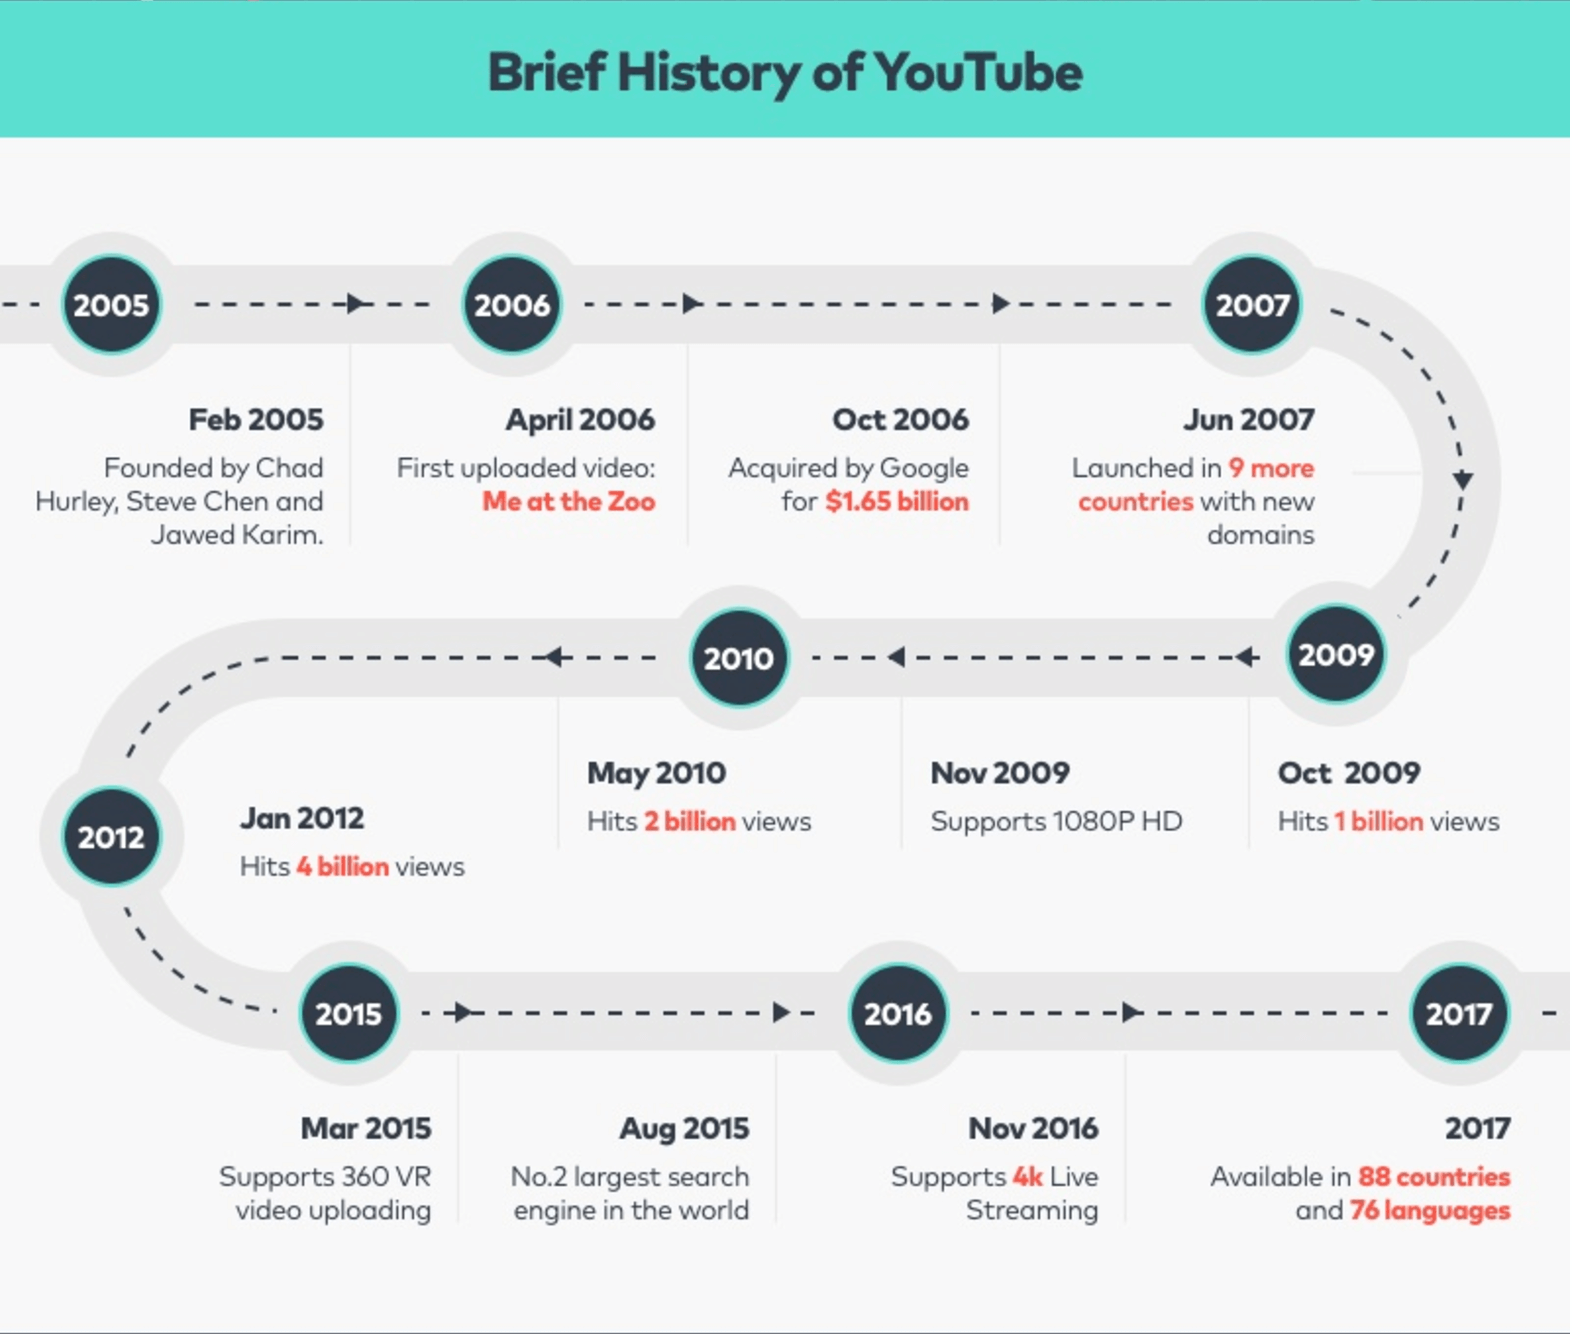 Infographic detailing the History of YouTube